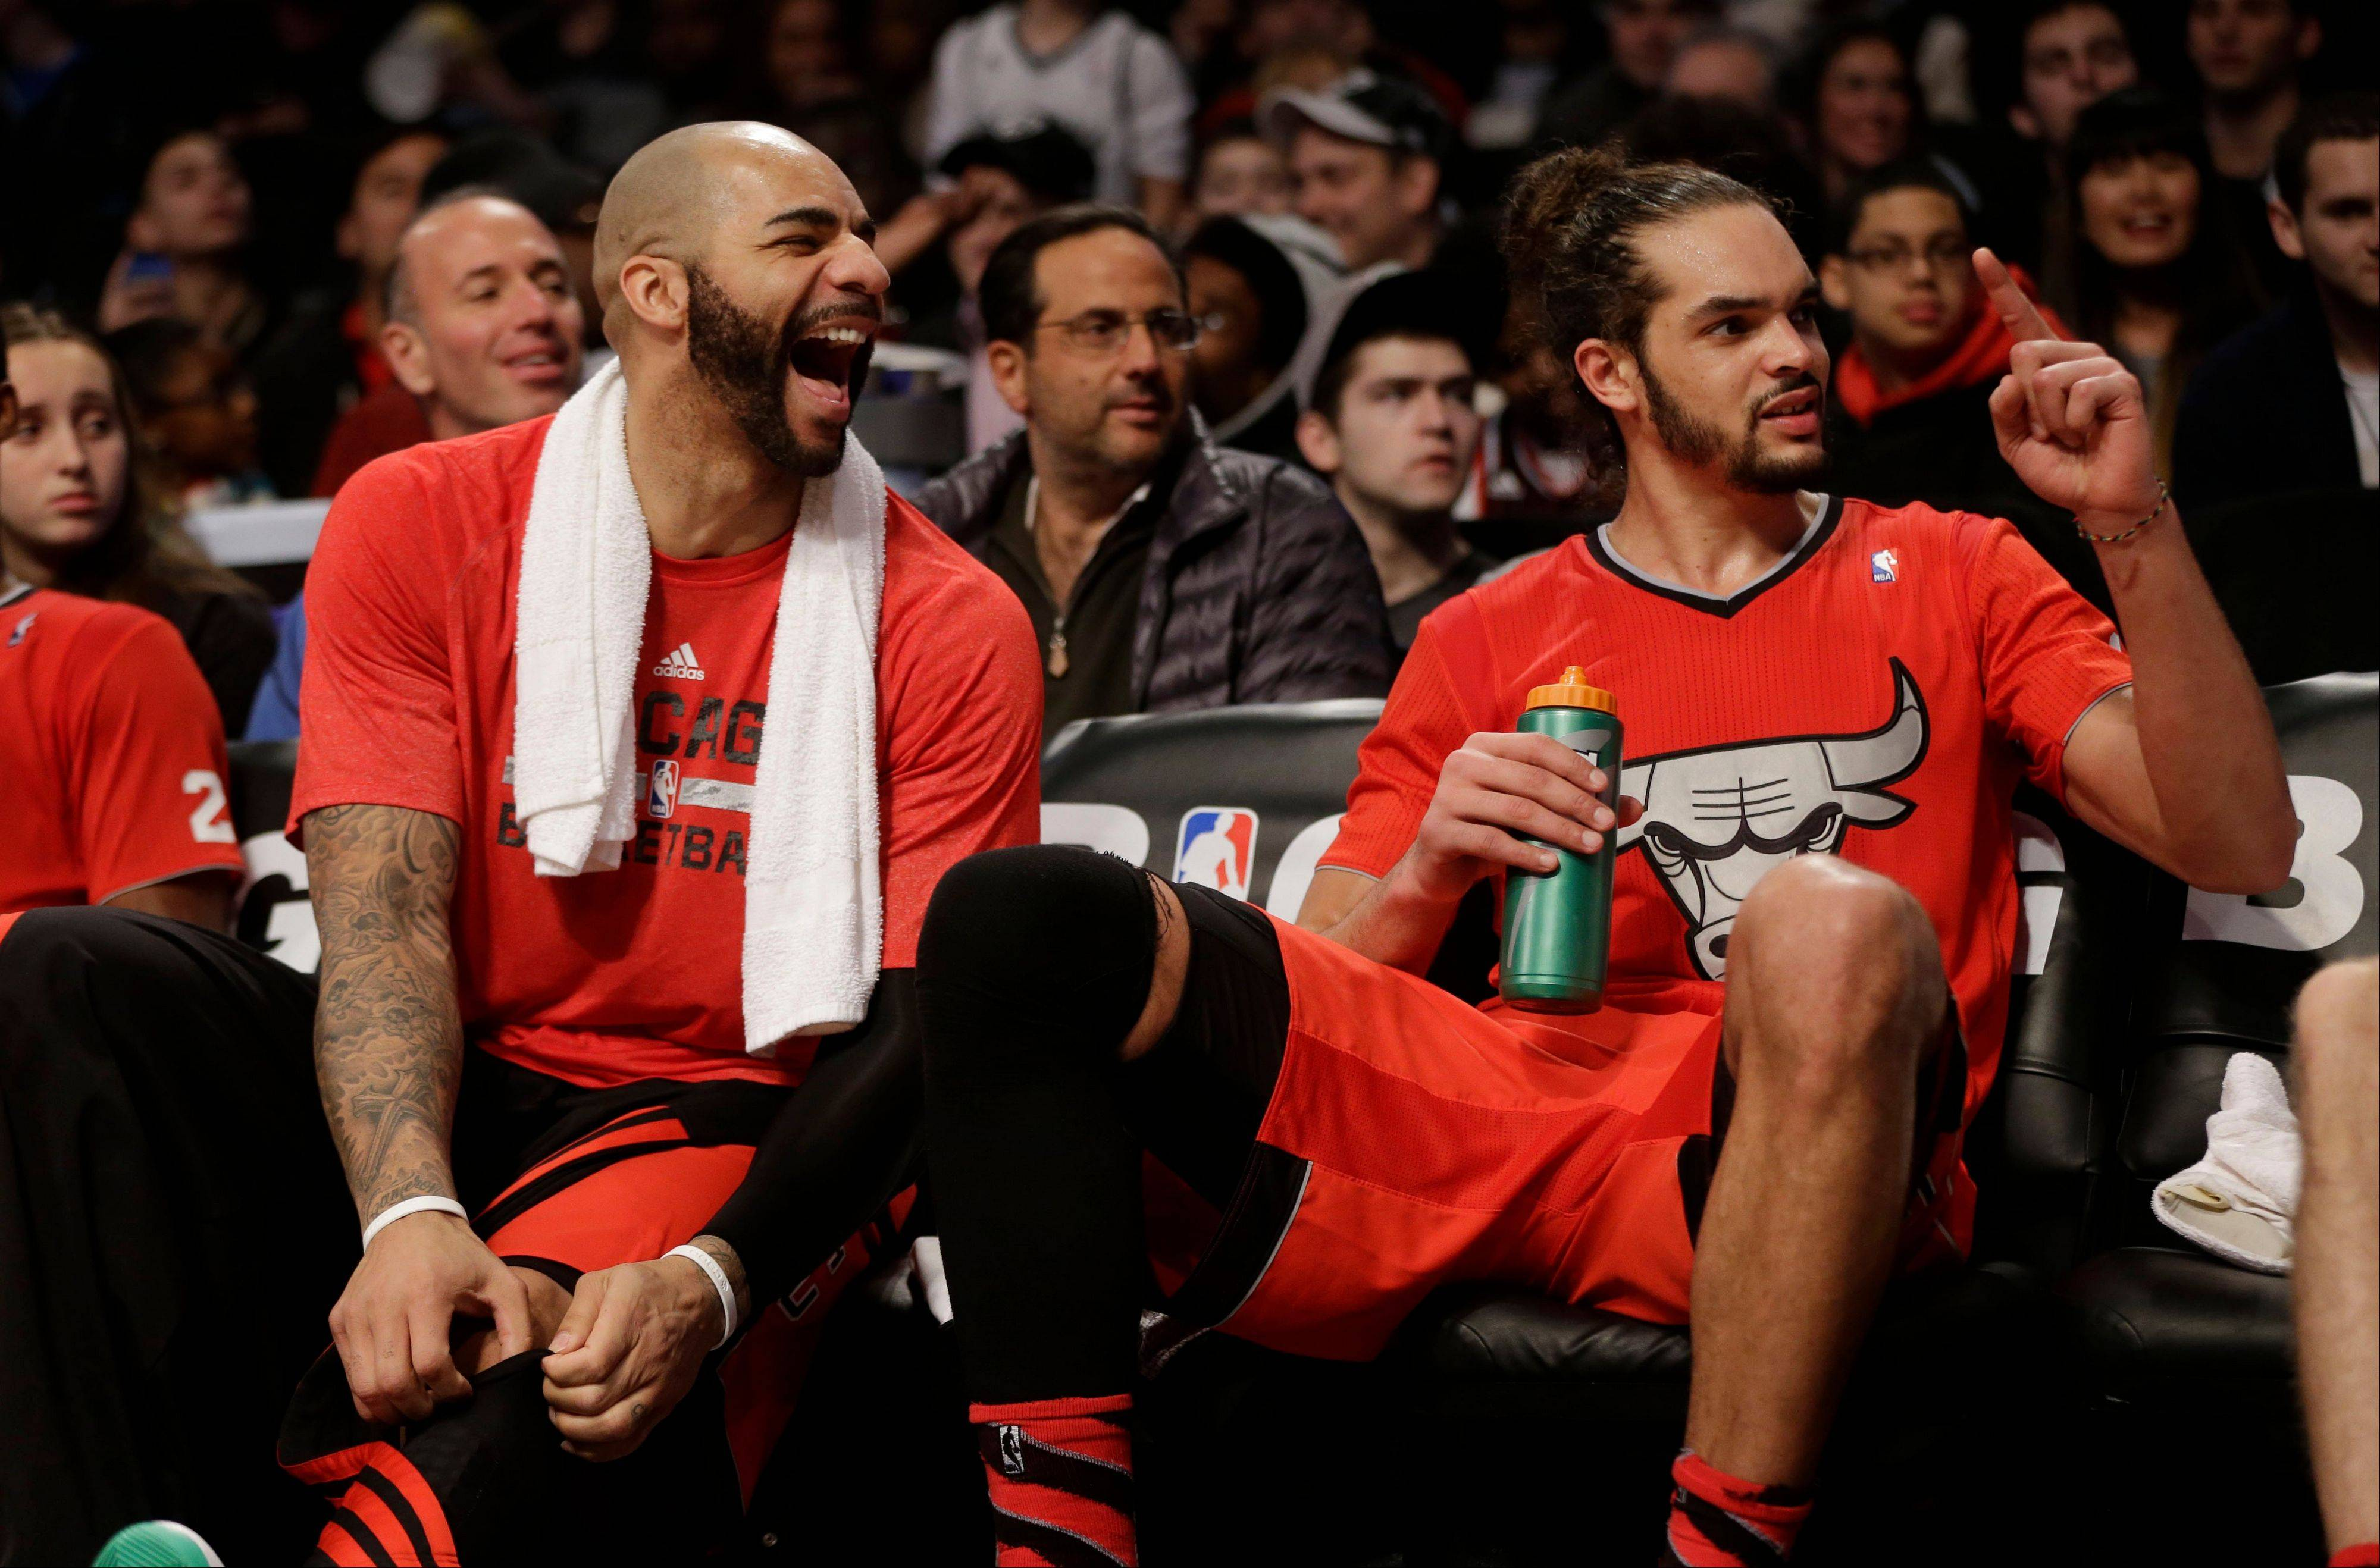 Chicago Bulls' Carlos Boozer, left, and Joakim Noah relax on the bench near the end of the second half of the NBA basketball game against the Brooklyn Nets at the Barclays Center Wednesday in New York. The Bulls defeated the Nets 95-78.